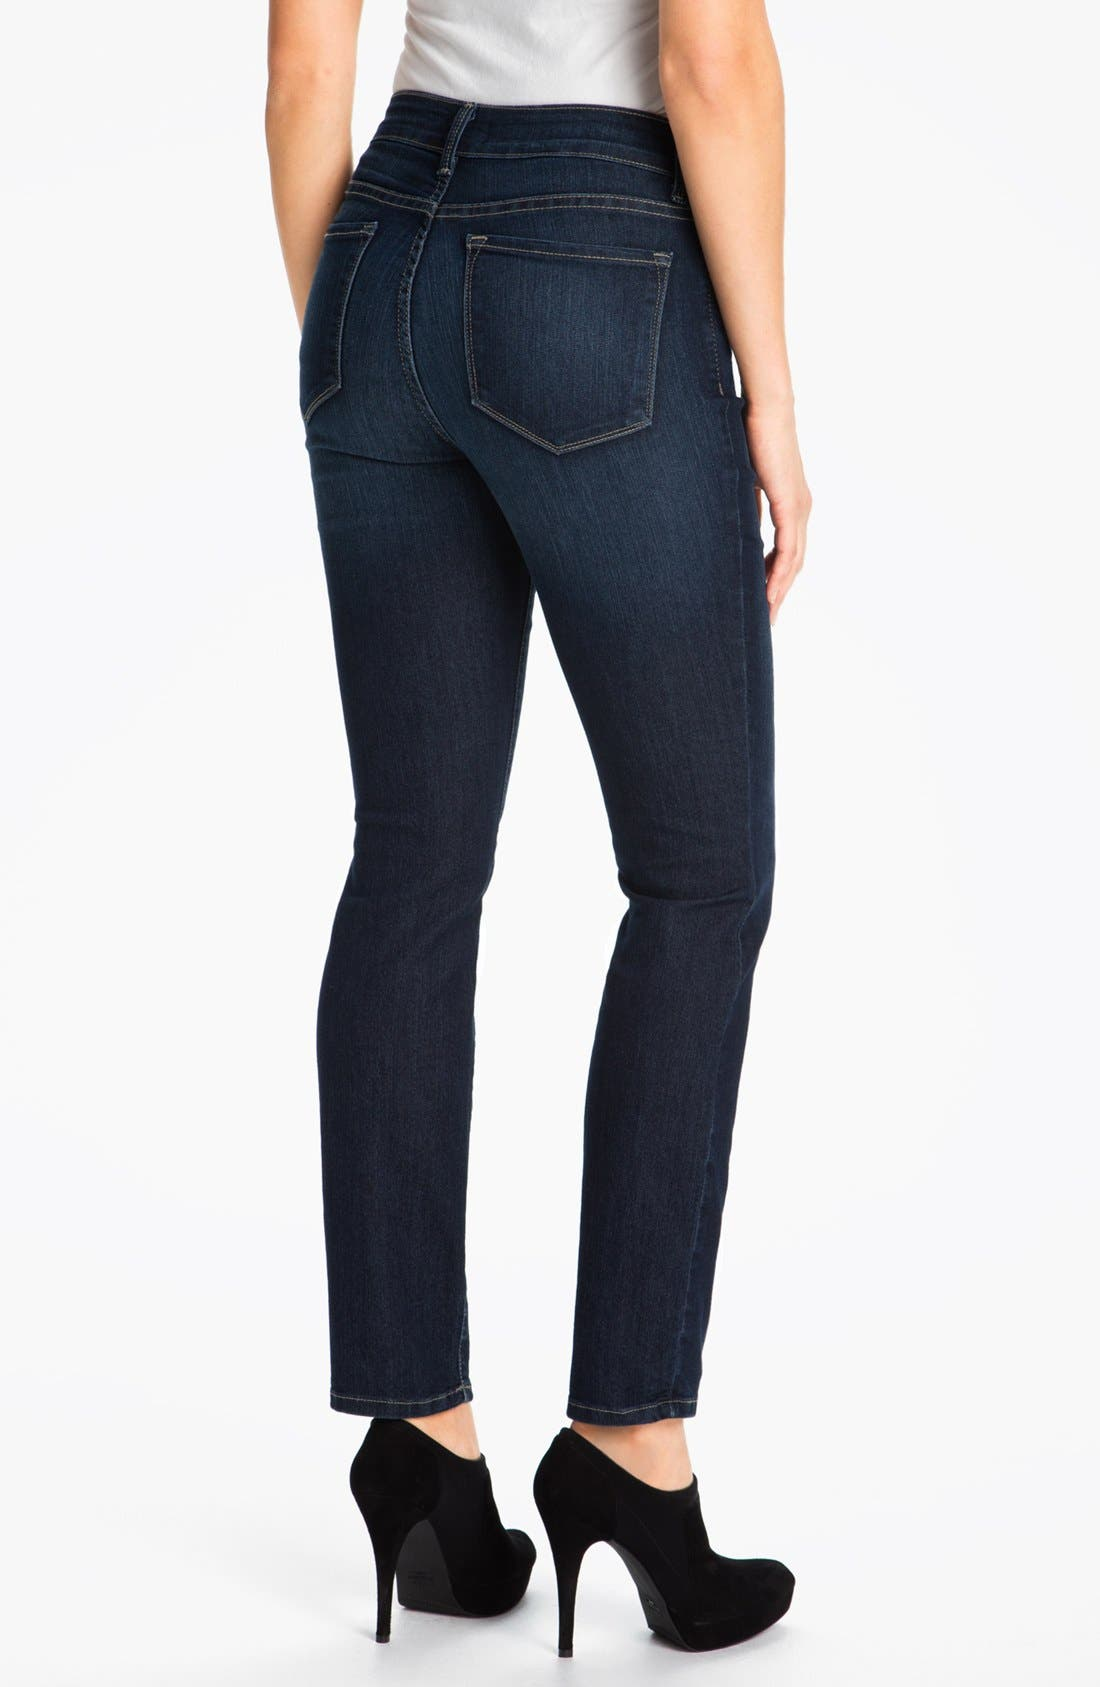 'Alina' Stretch Skinny Jeans,                             Alternate thumbnail 5, color,                             425